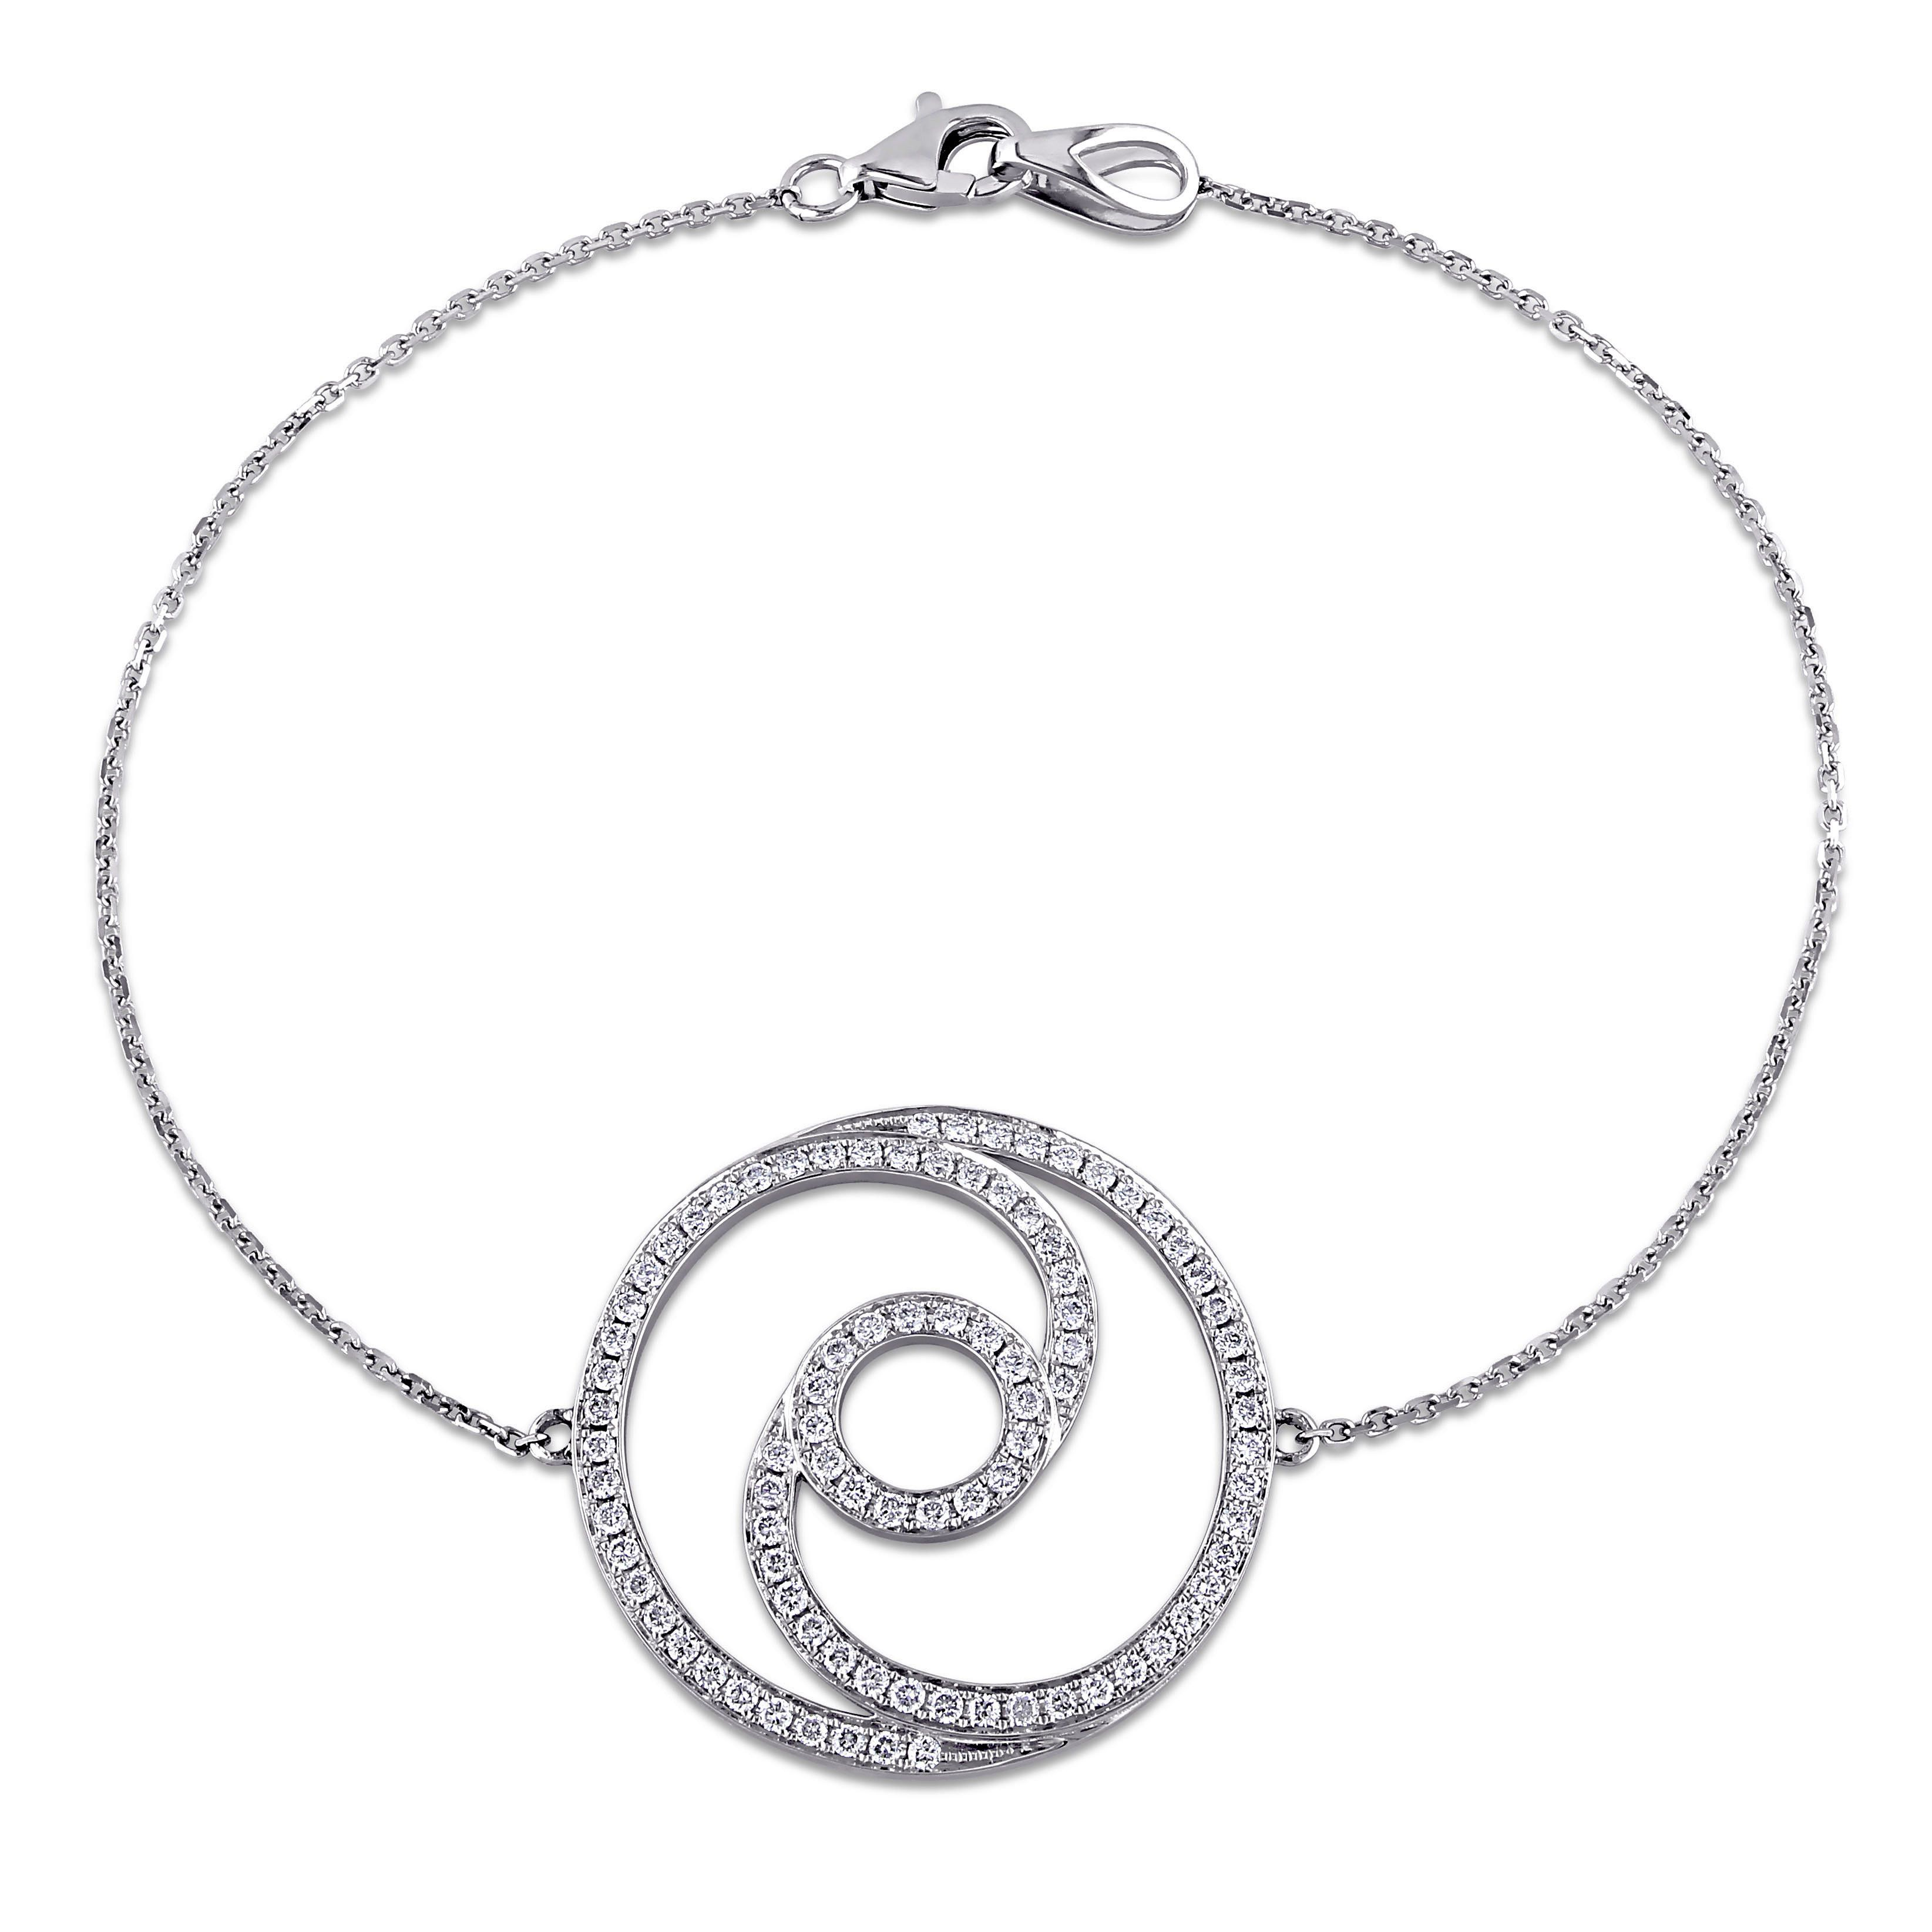 This attractive double circle bracelet from the shira design